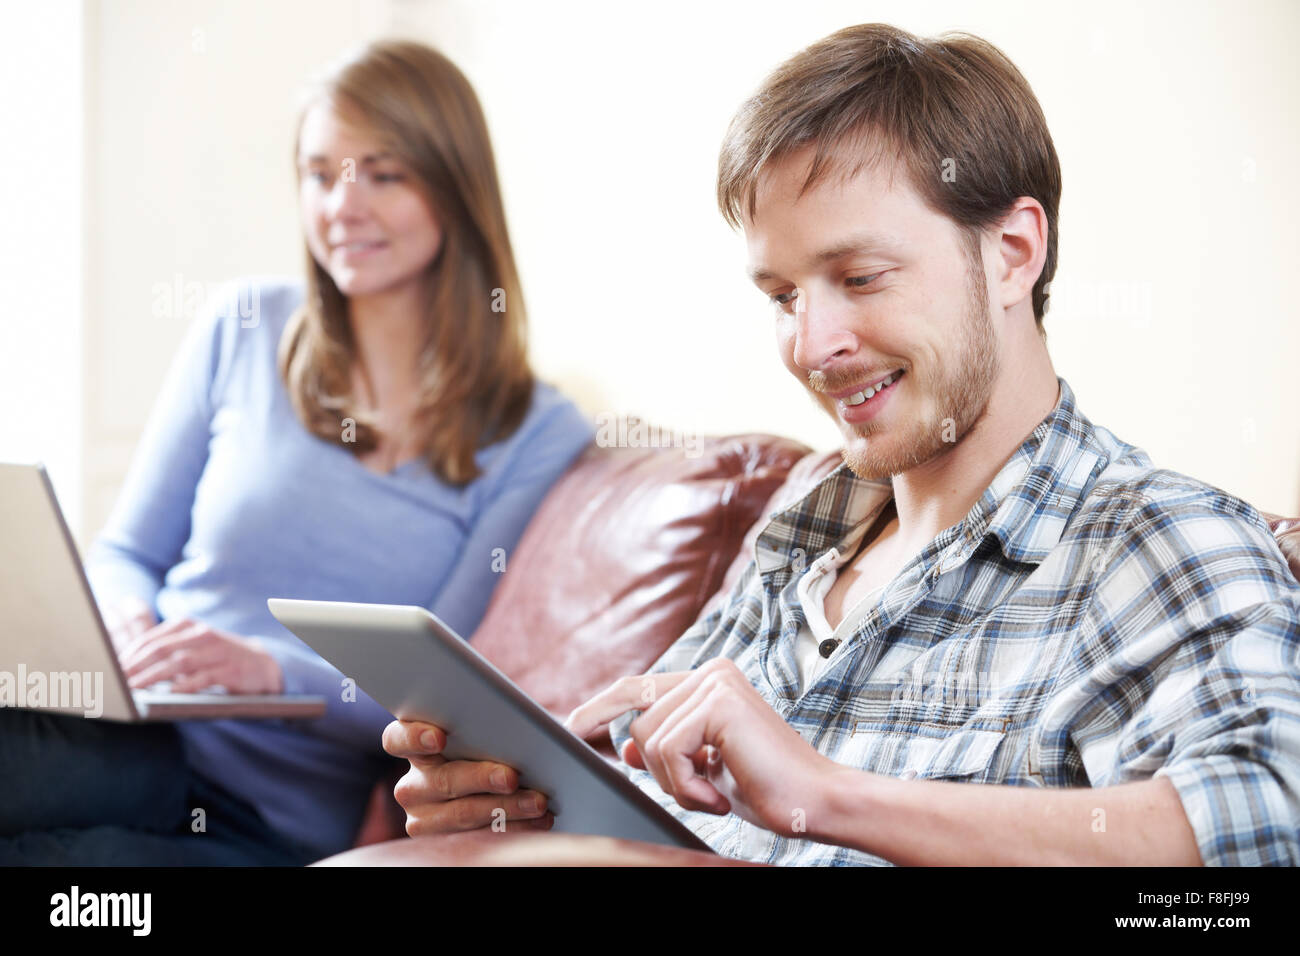 Couple Using Digital Technology At Home - Stock Image